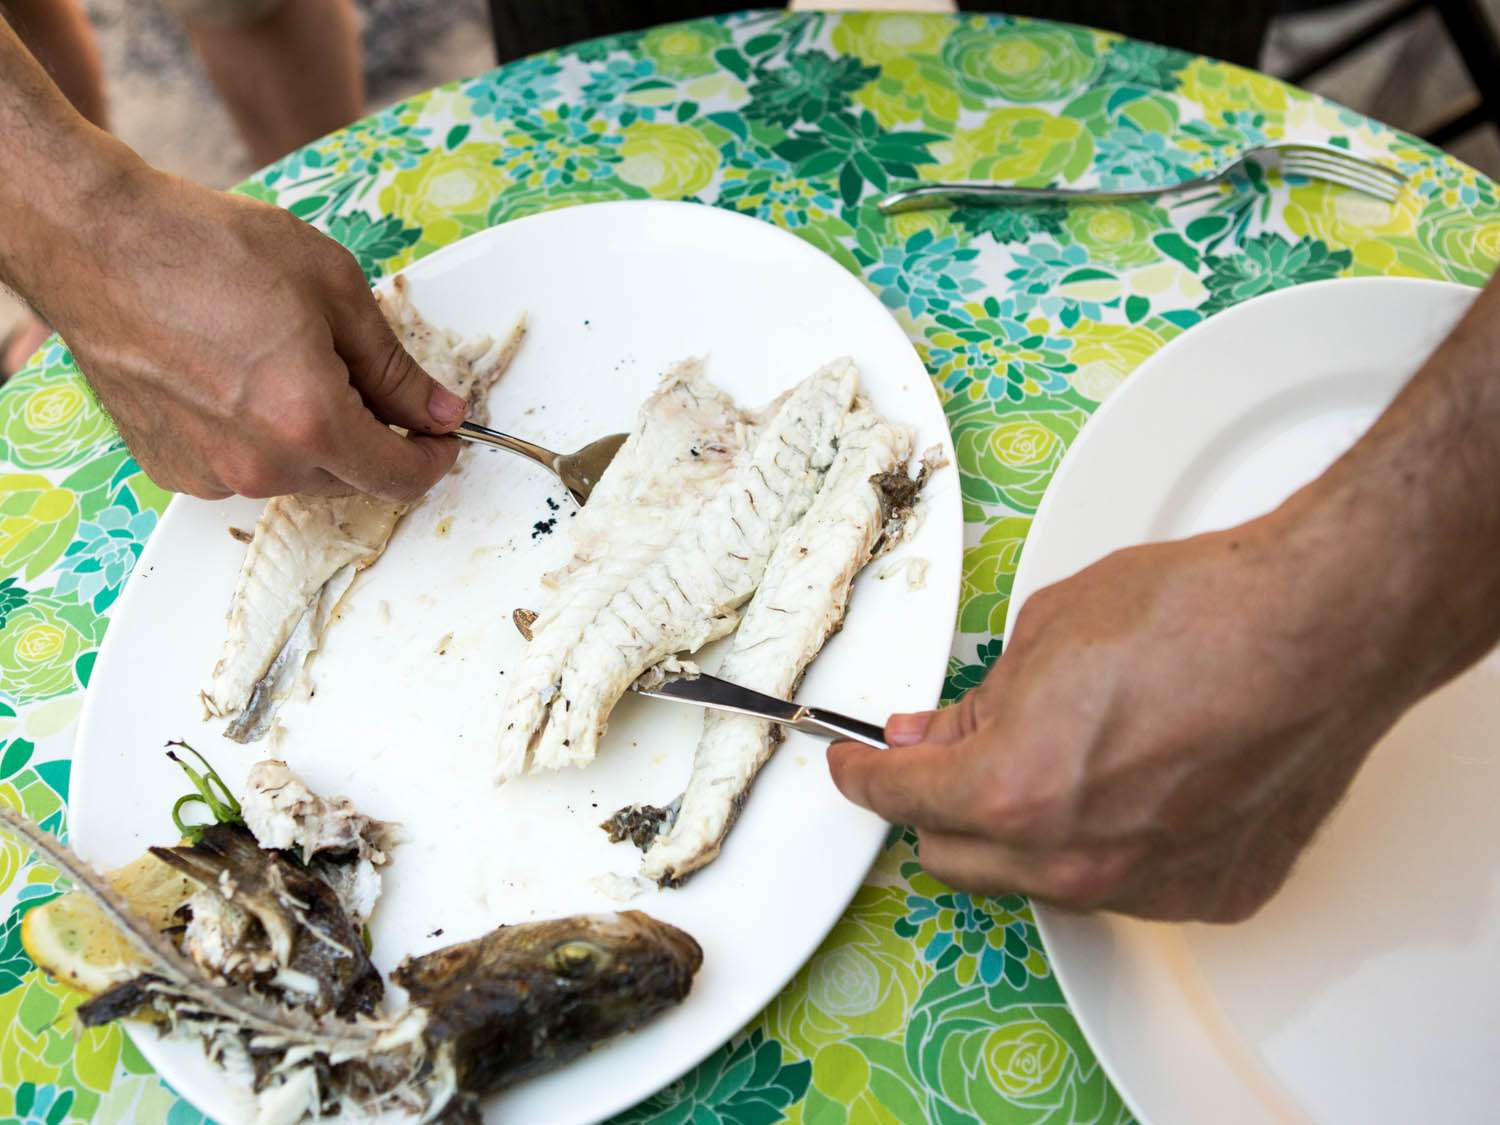 20140708-how-to-serve-whole-fish-vicky-wasik-29.jpg